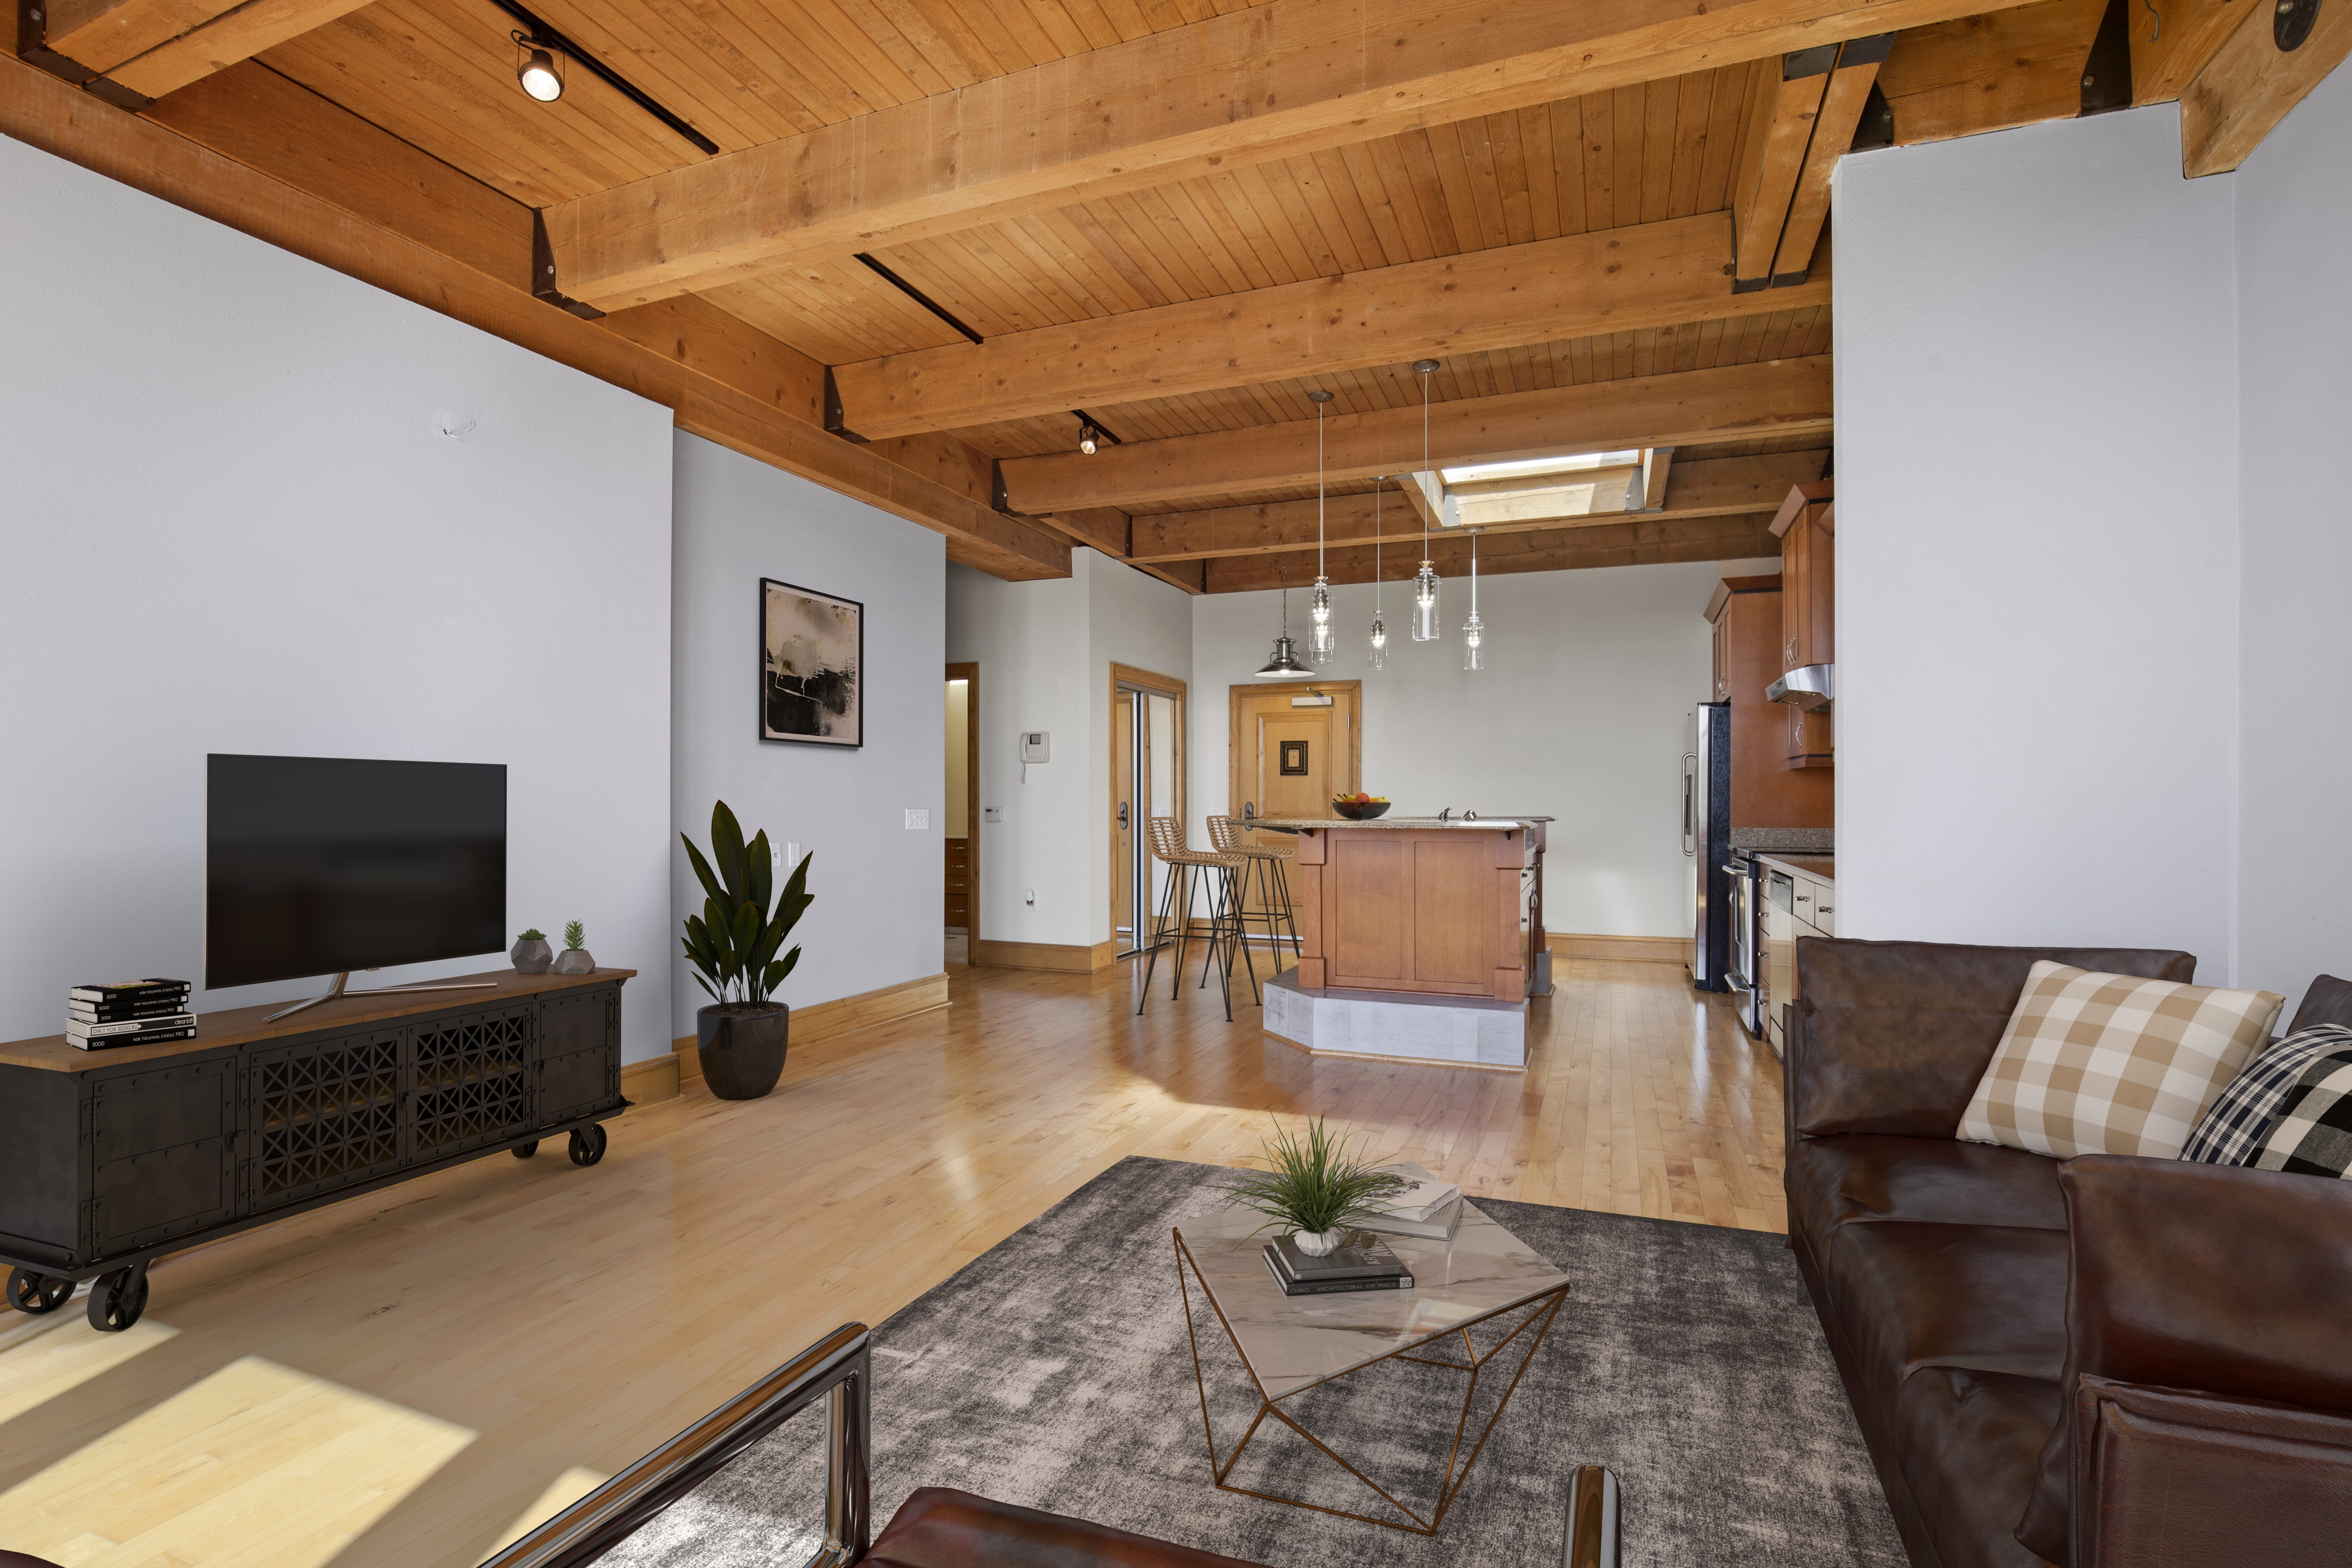 130 S. Water St., #408. Photo courtesy of Corley Real Estate.